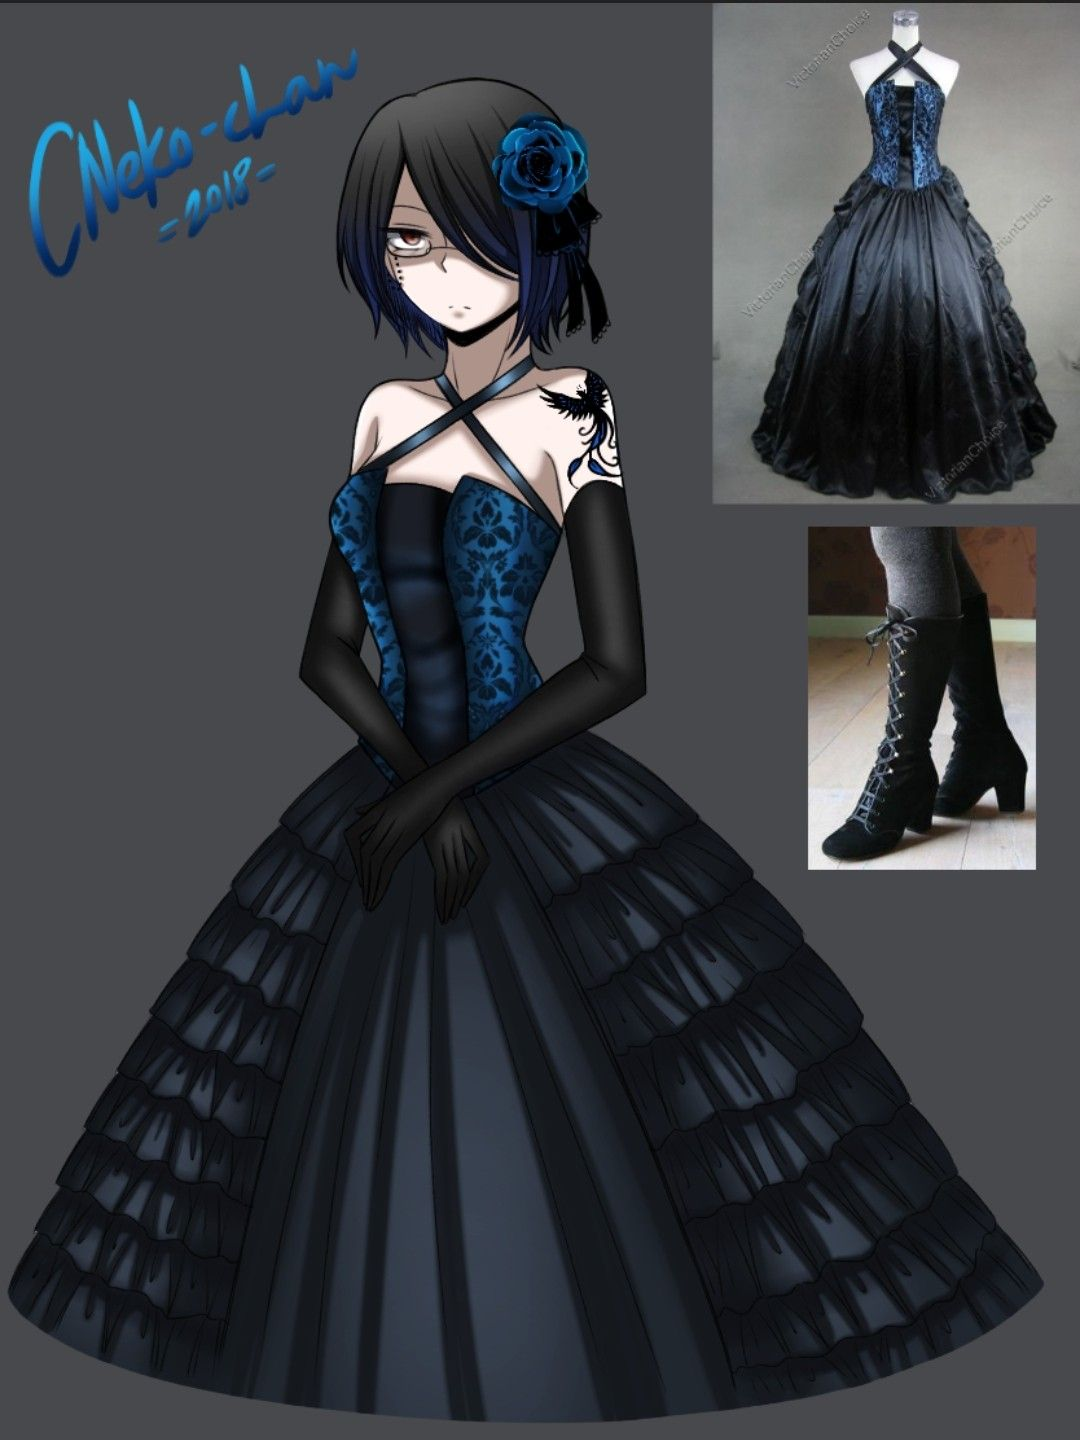 Pin by brittany ray monson on cnekochan anime outfits